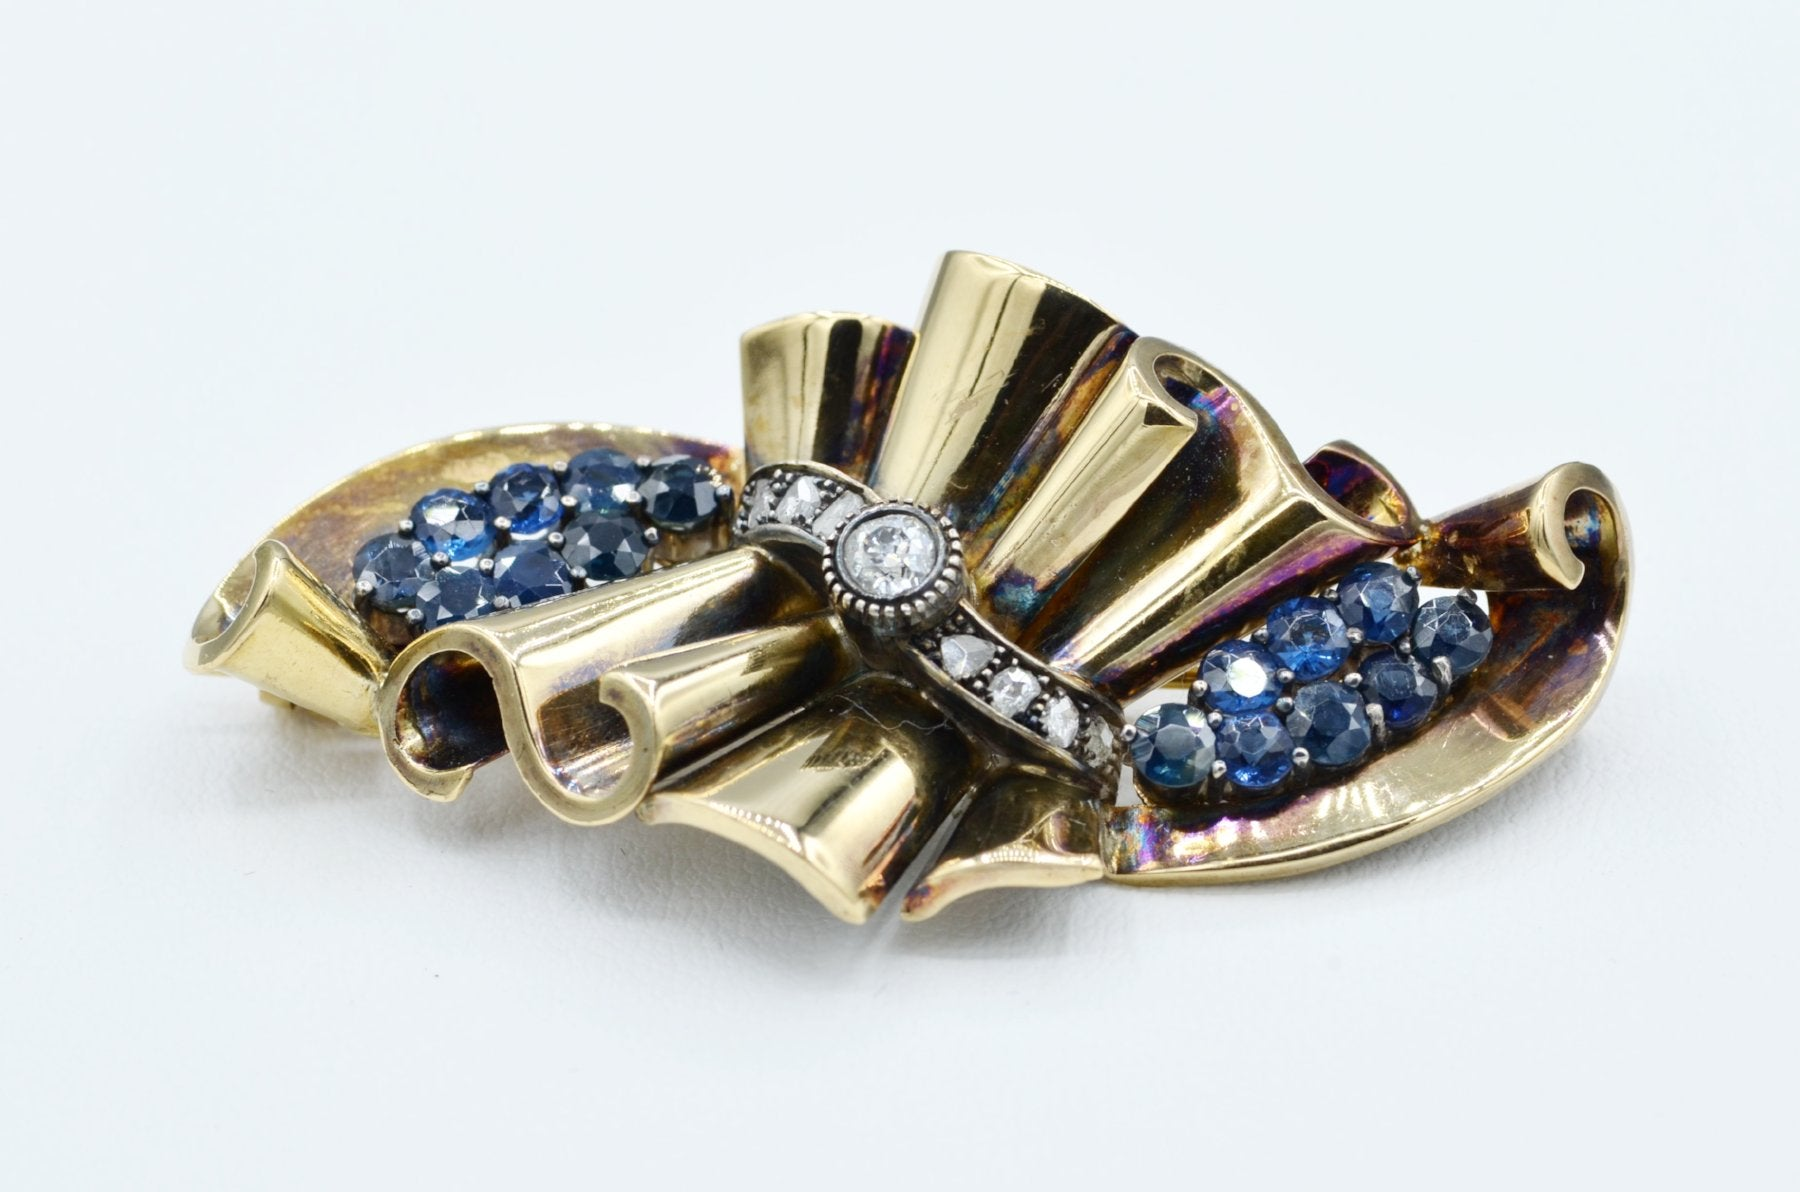 platinum carat itm french pearl and ct diamond cultured with spray a gold sapphire stunning vintage white brooch pin